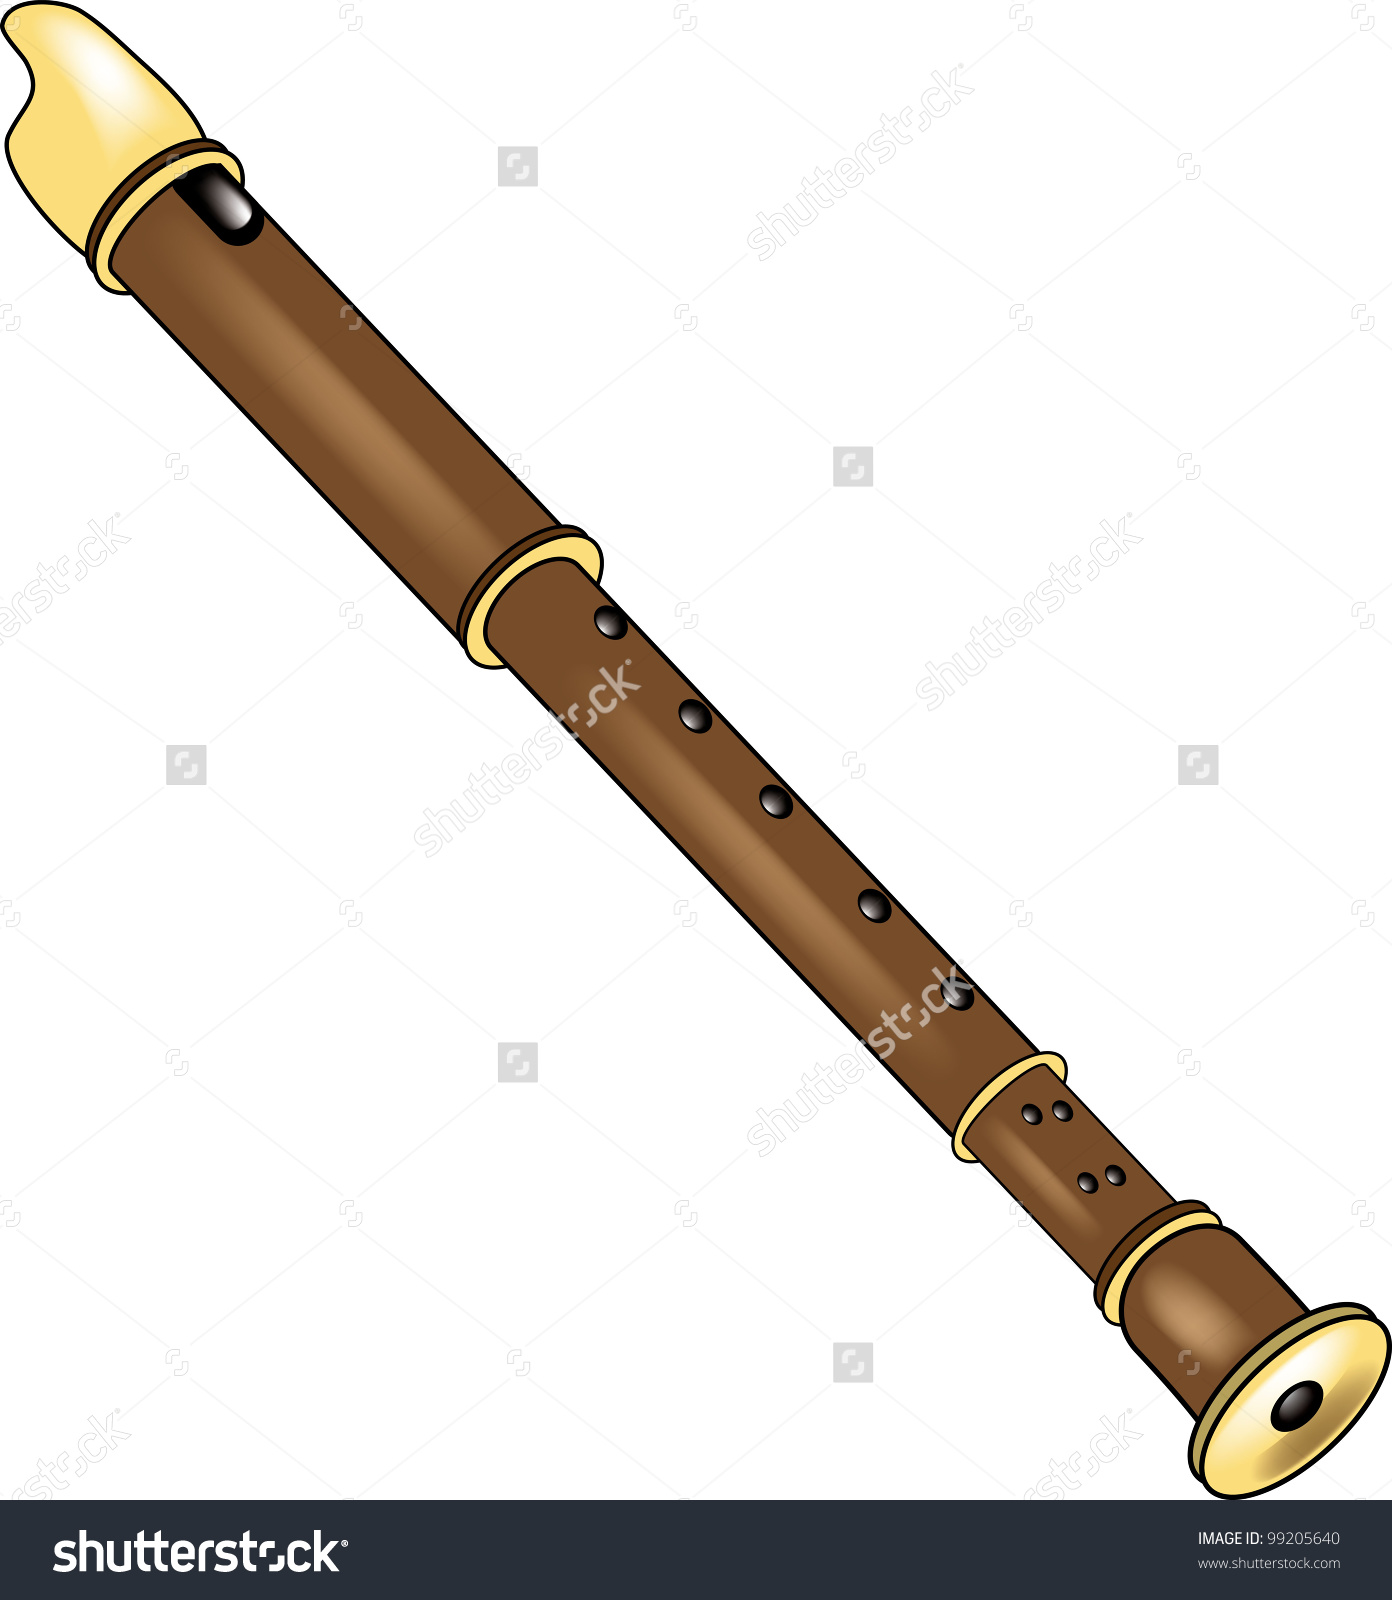 Clip Art Illustration Recorder Flute Stock Illustration 99205640.